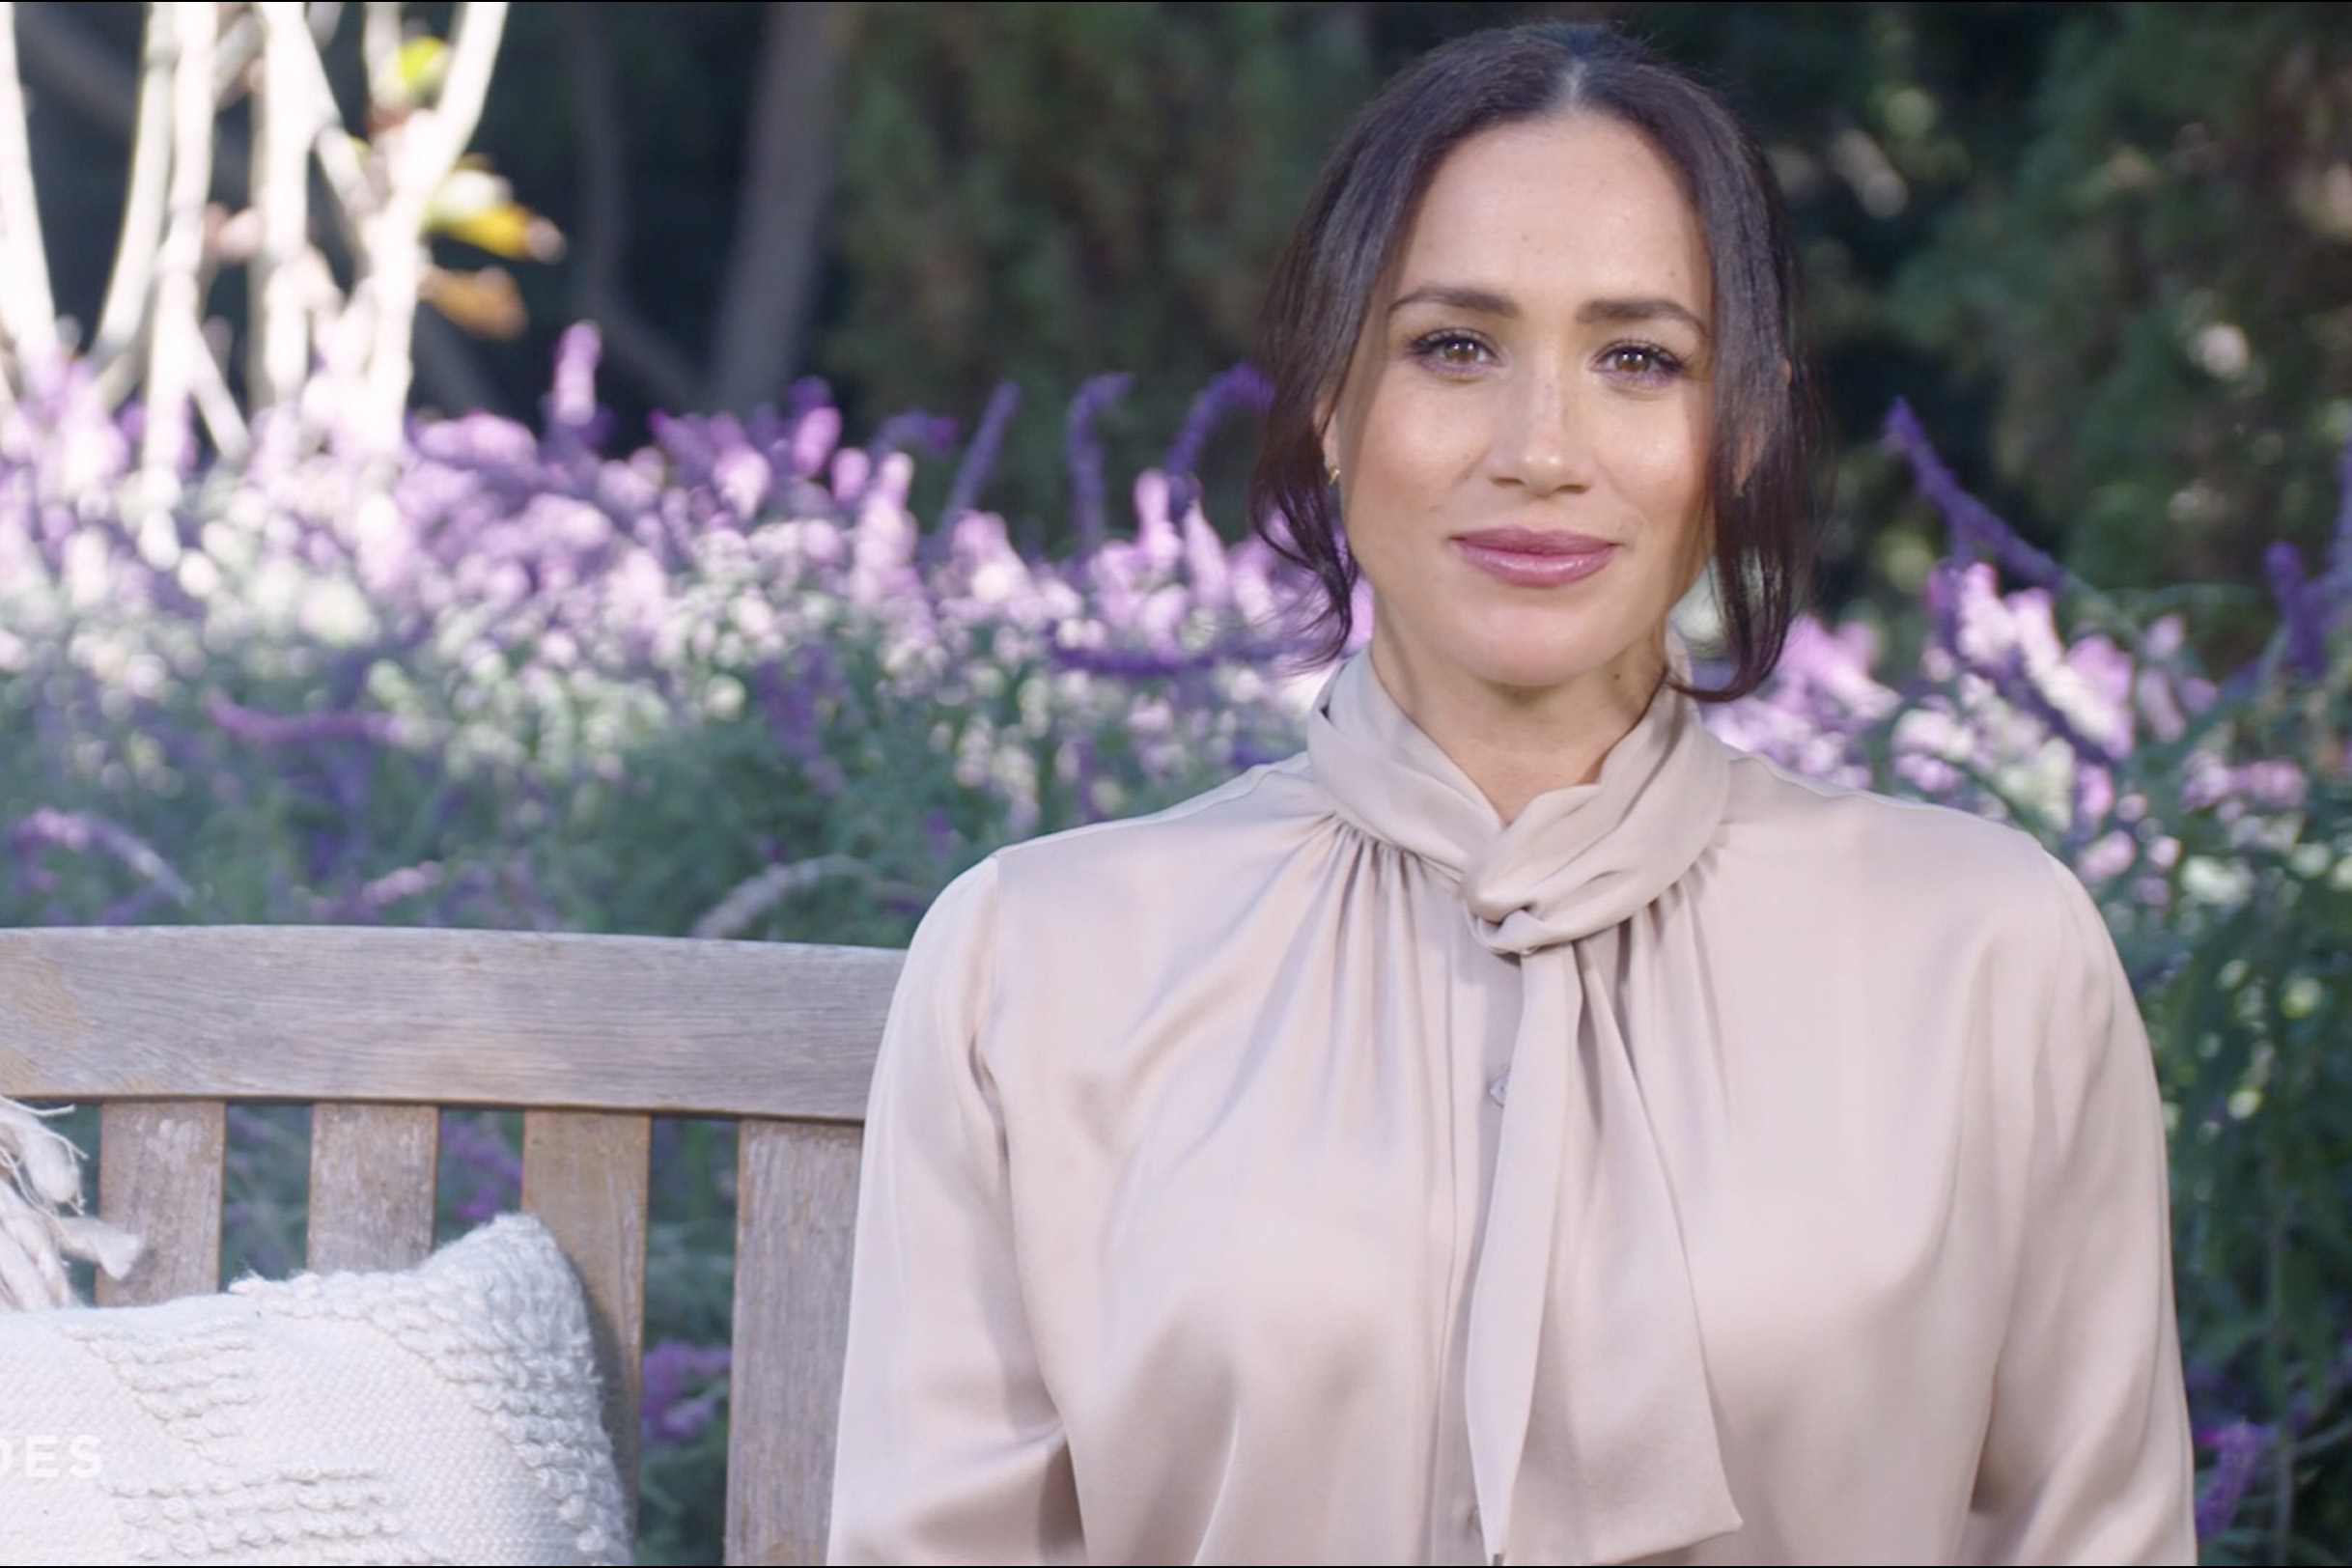 Meghan Markle makes surprise TV appearance to honor COVID heroes